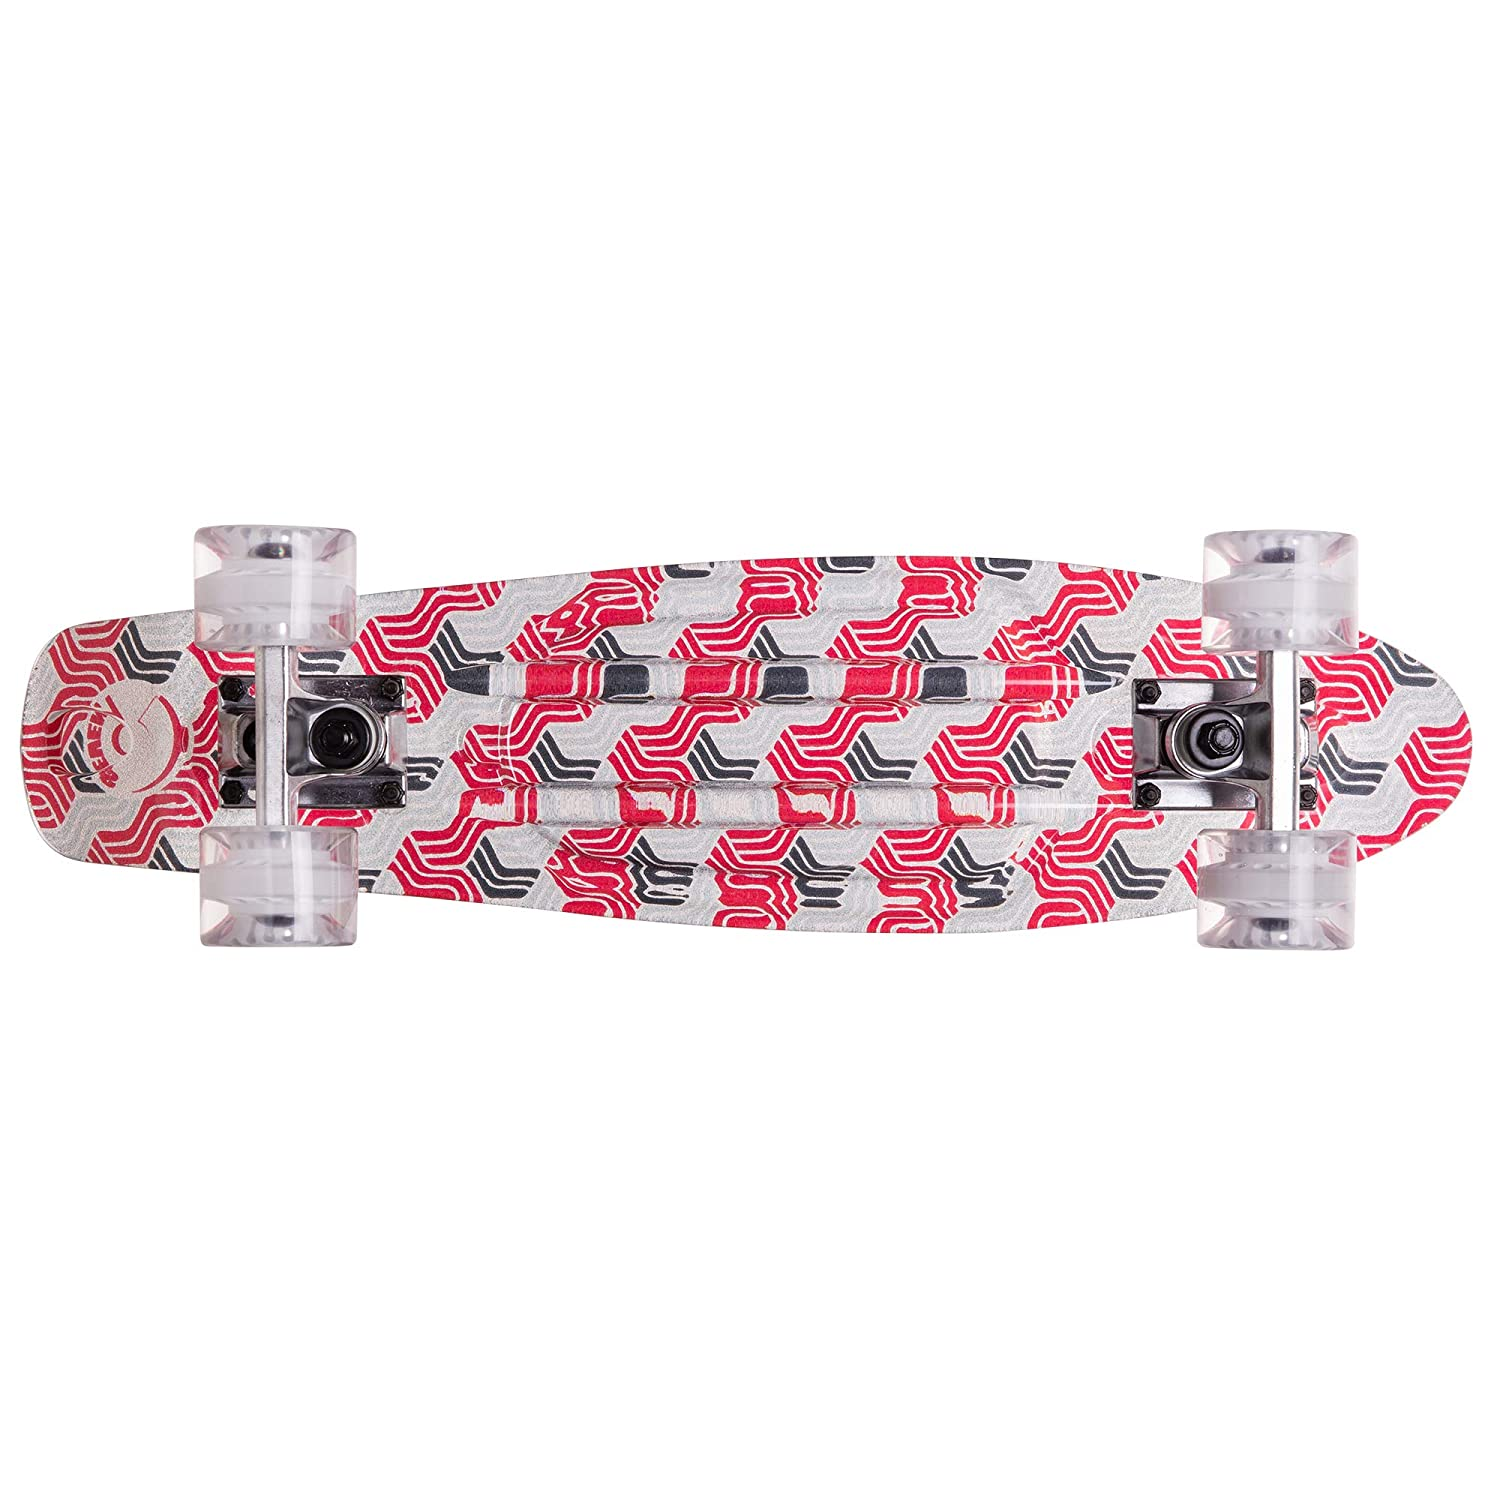 22 Inch Micro Board Cal 7 Complete Mini Cruiser Vintage Skateboard for School and Travel